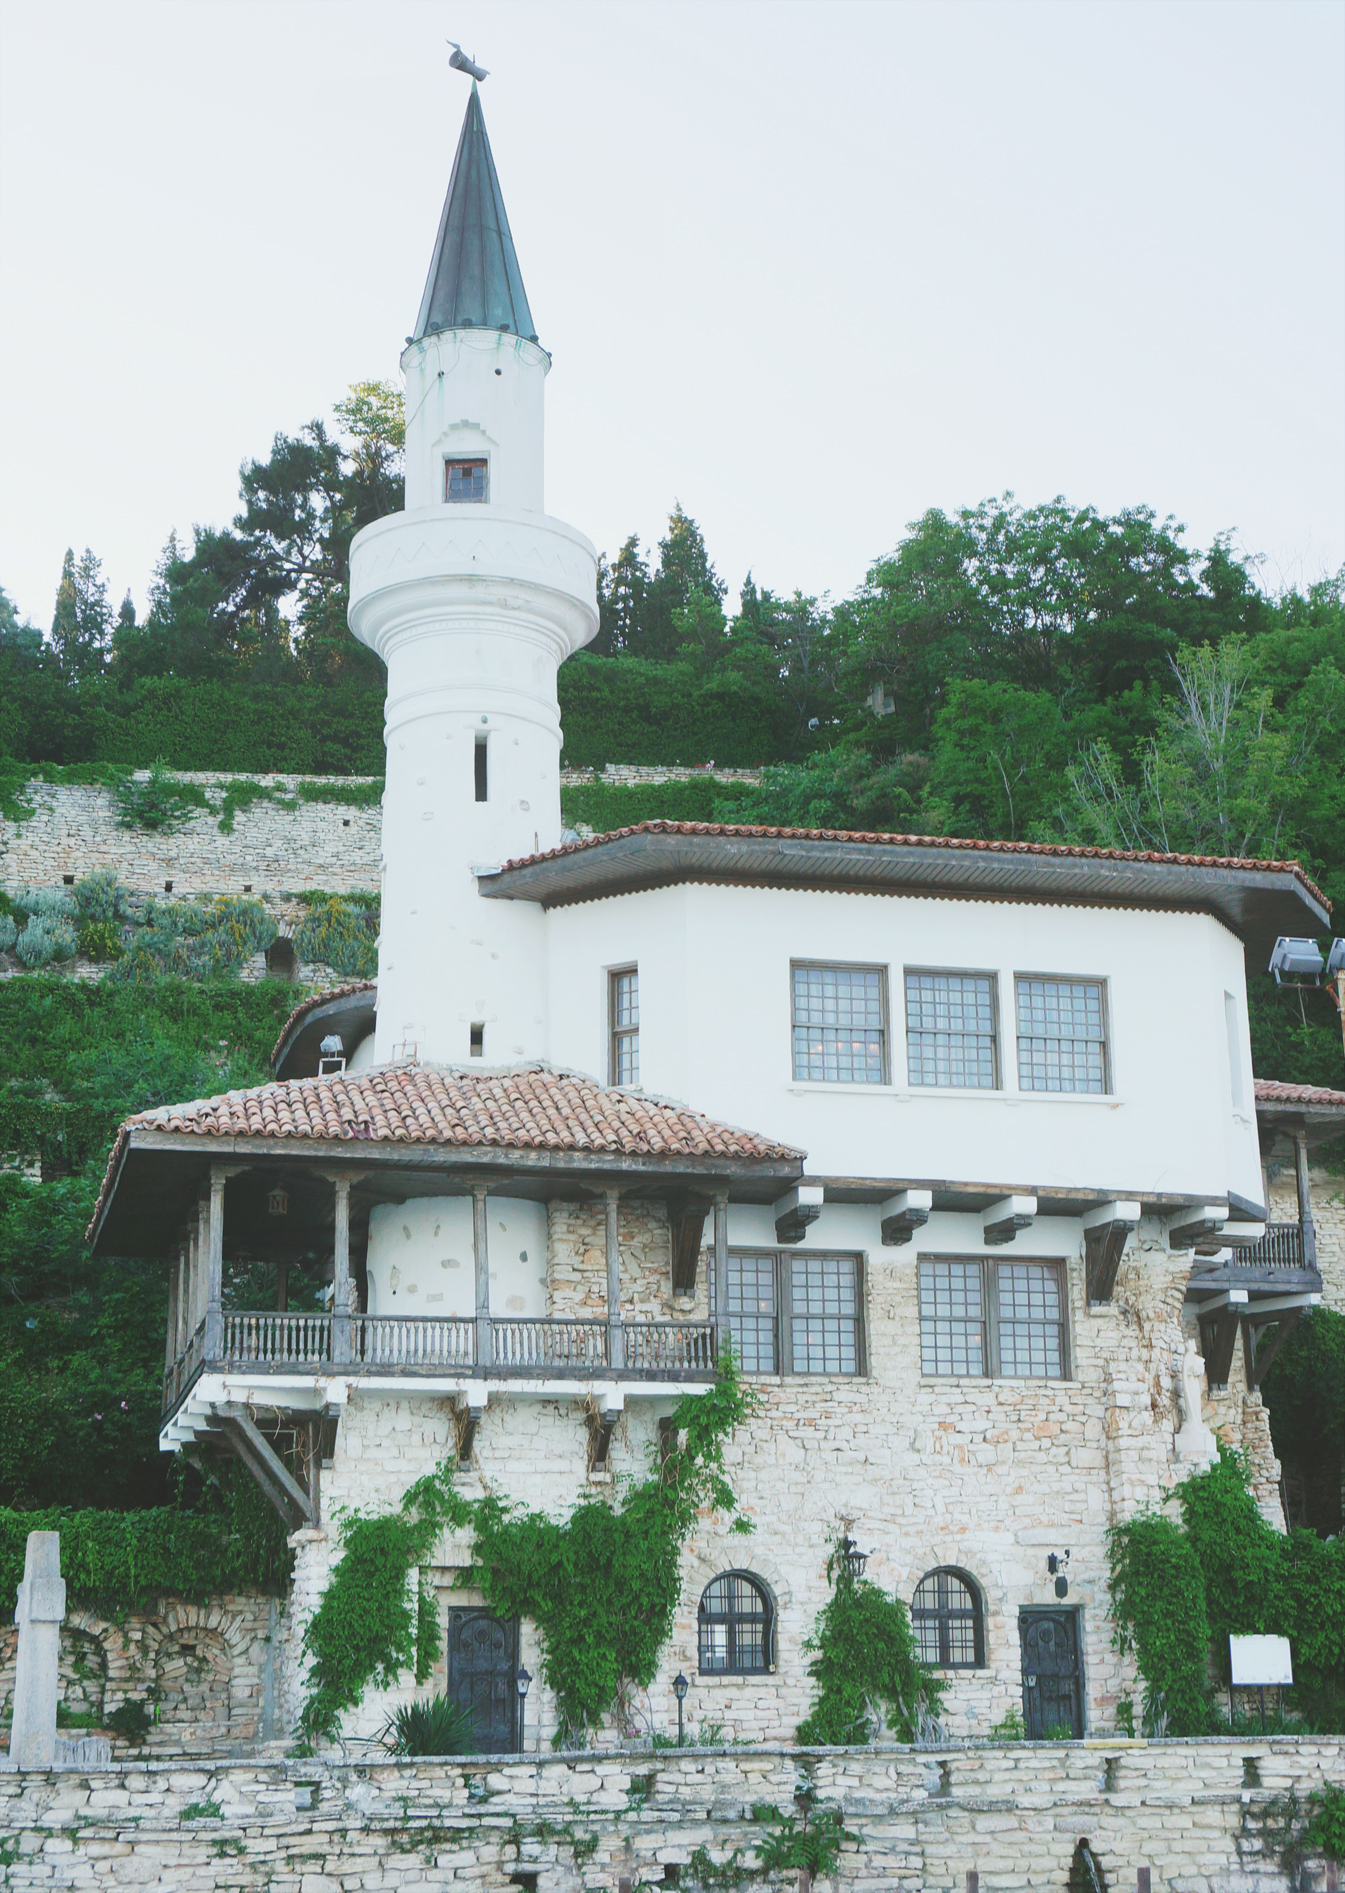 Botanical garden in Balchik, Bulgarien